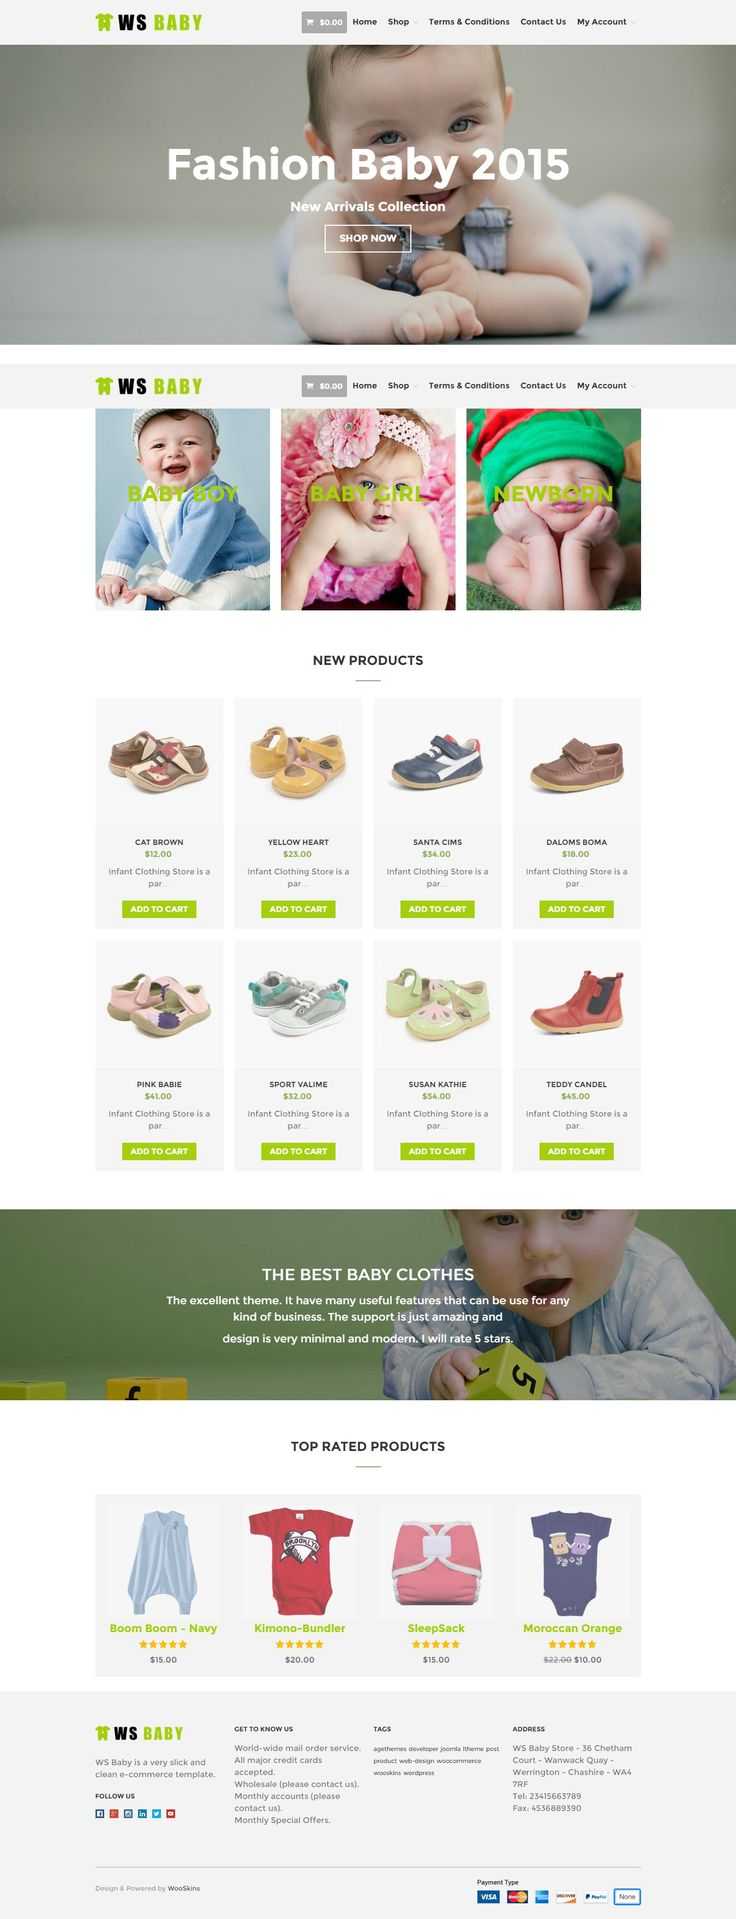 Website soft colors - Ws Baby Is Free Woocommerce Wordpress Theme Tailored For Kids Or Baby Store Websites The Theme Comes With A Clean And Lovely Design Using Soft Colors